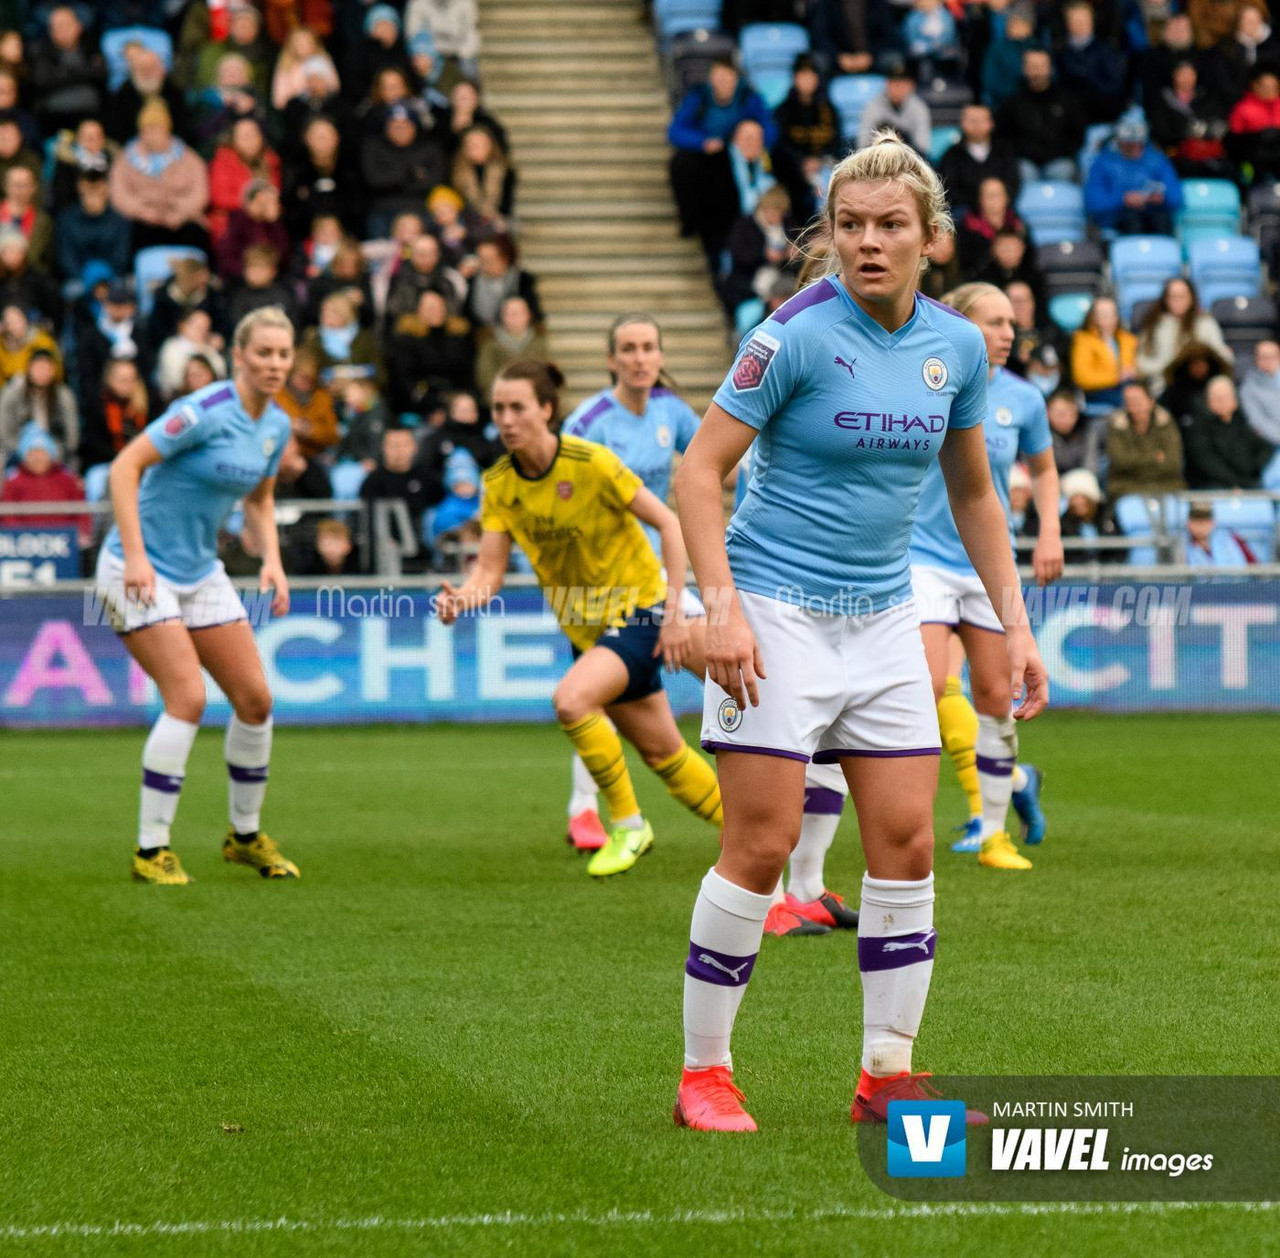 Arsenal vs Manchester City Women's Super League preview: Team news, predicted line ups, ones to watch and how to watch